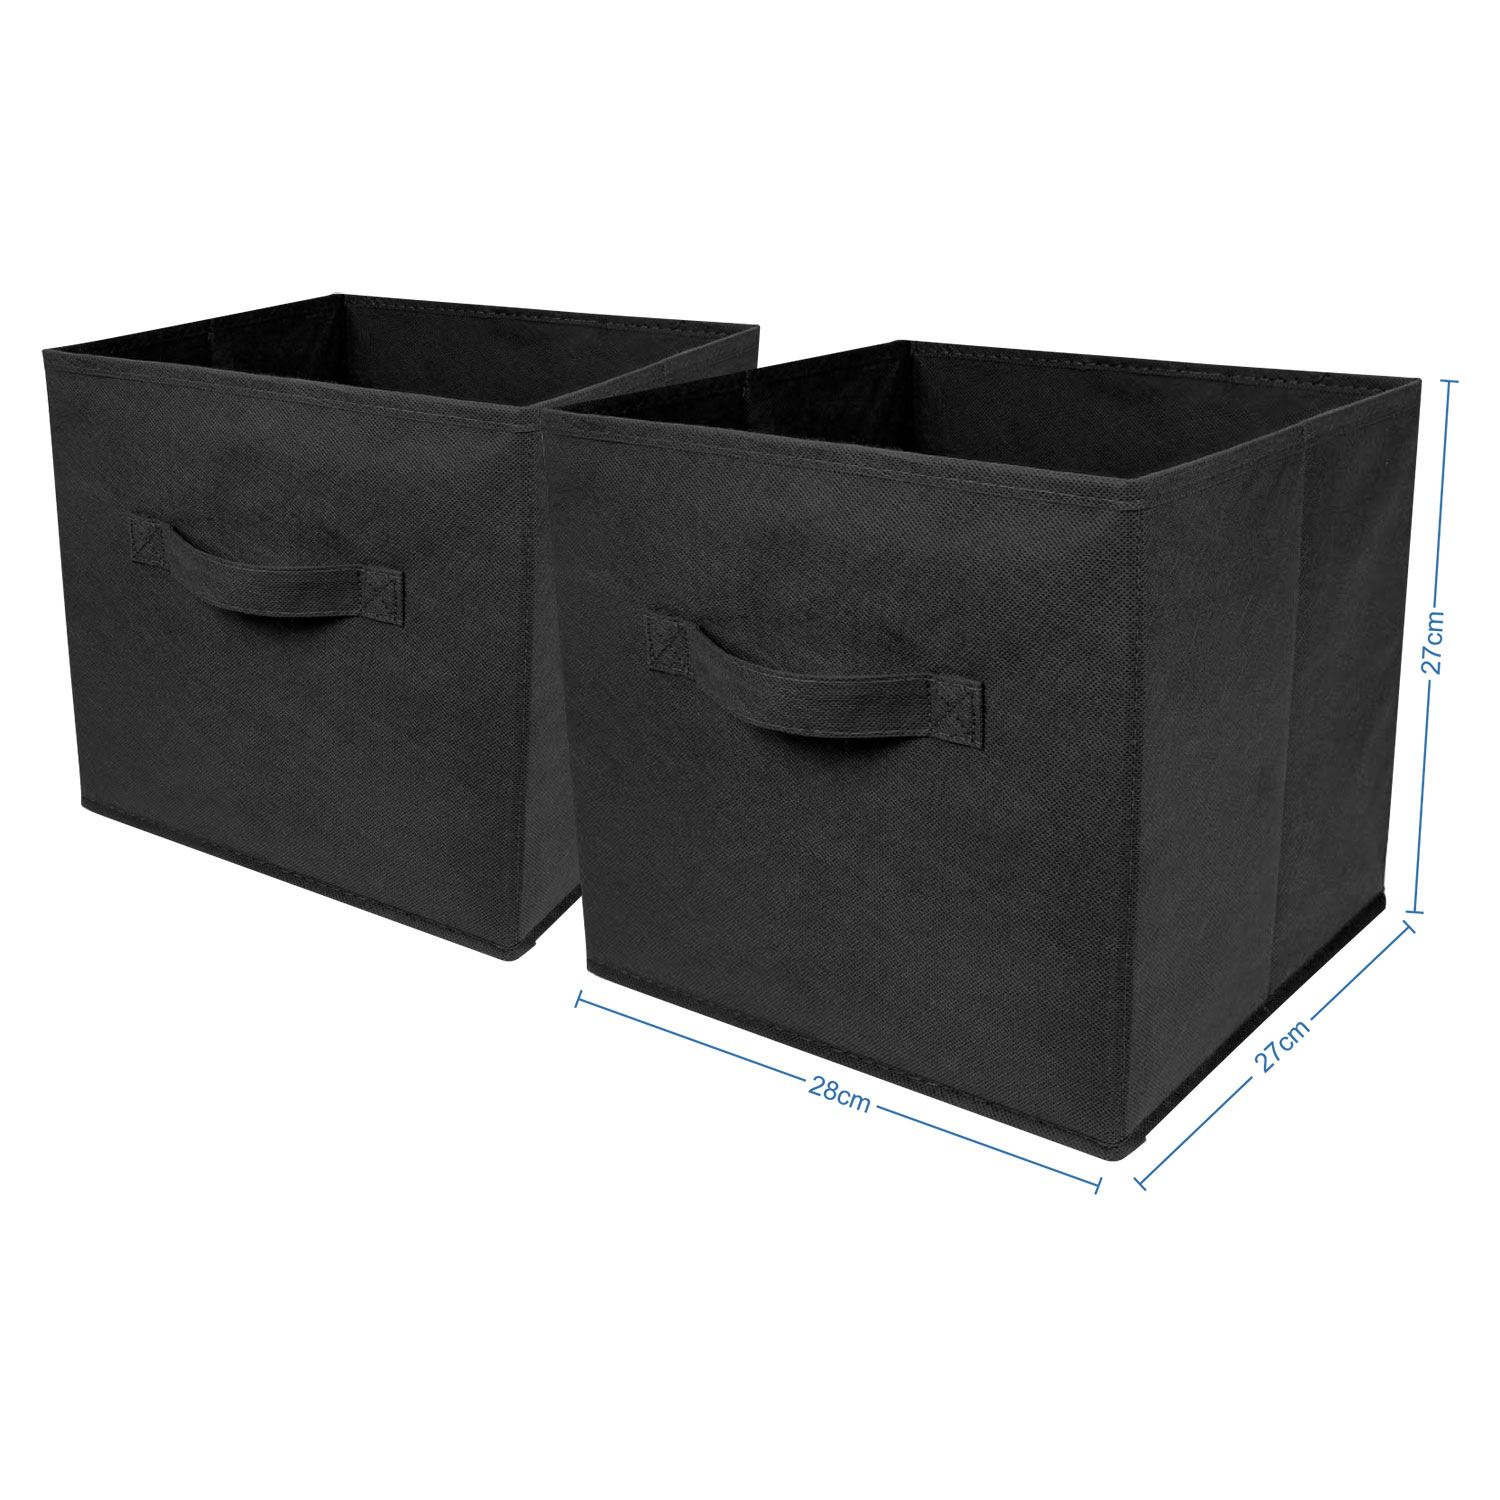 Canvas Storage Boxes For Wardrobes: Pack Of 2 Square Canvas Storage Cube Collapsible Fabric